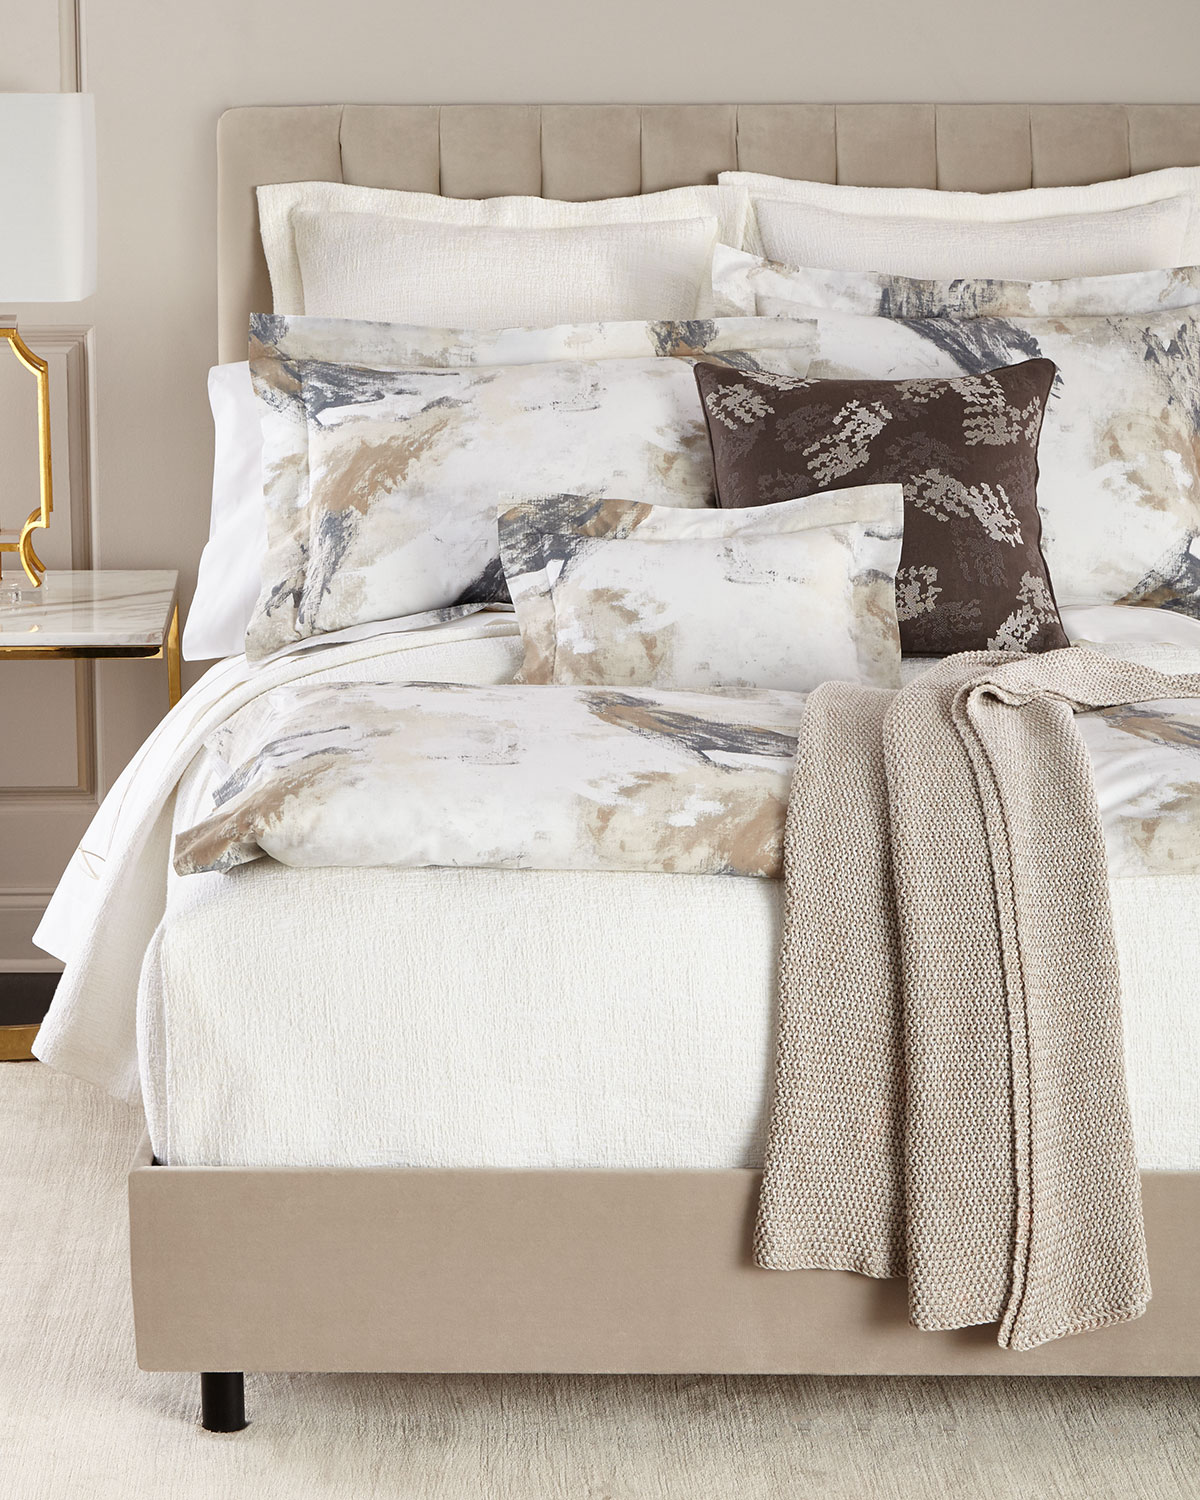 Two Standard Scroll Pillowcases